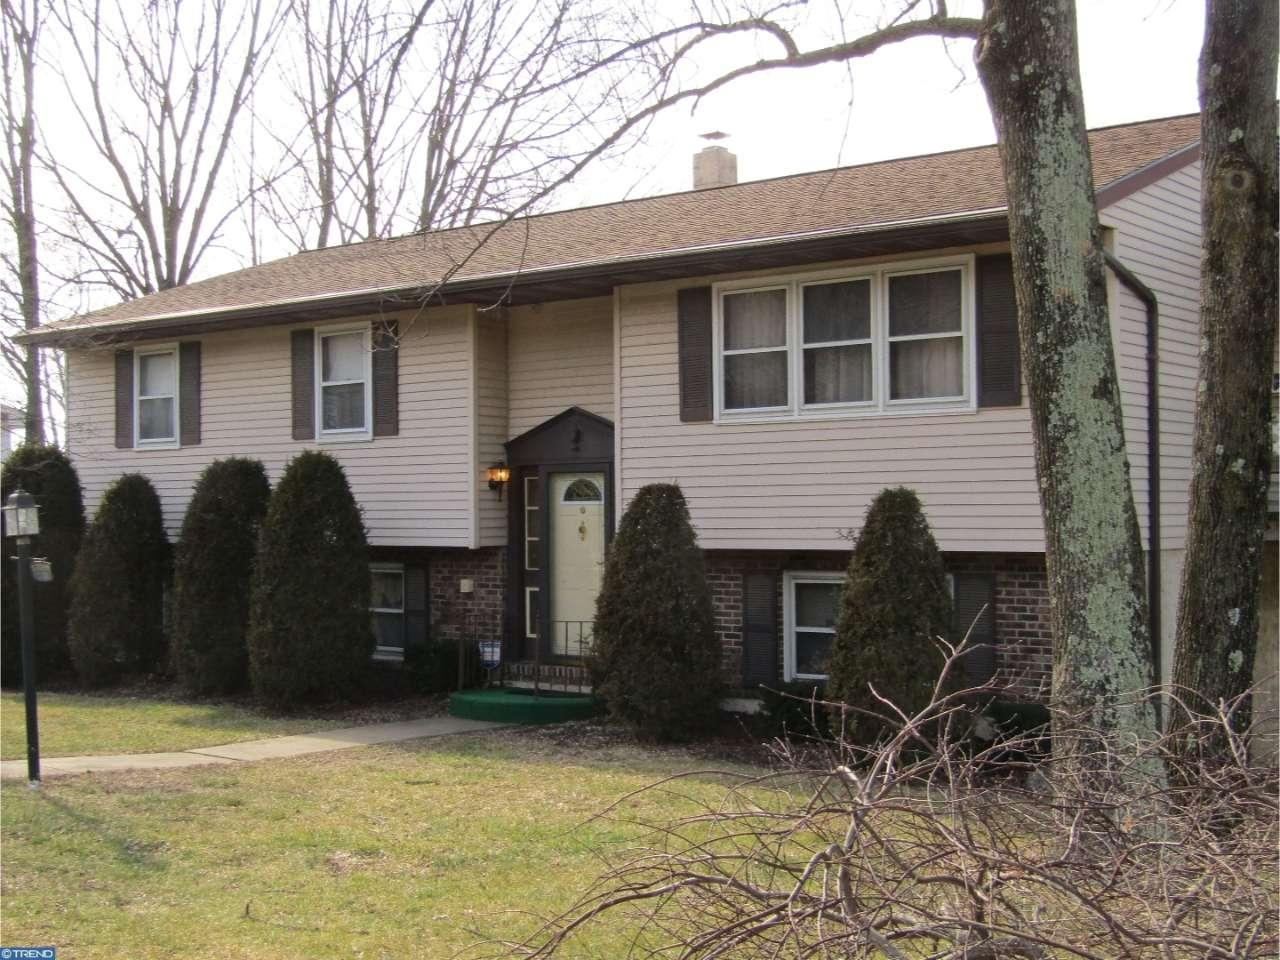 Property for sale at 2336 ALSACE RD, Reading,  PA 19604